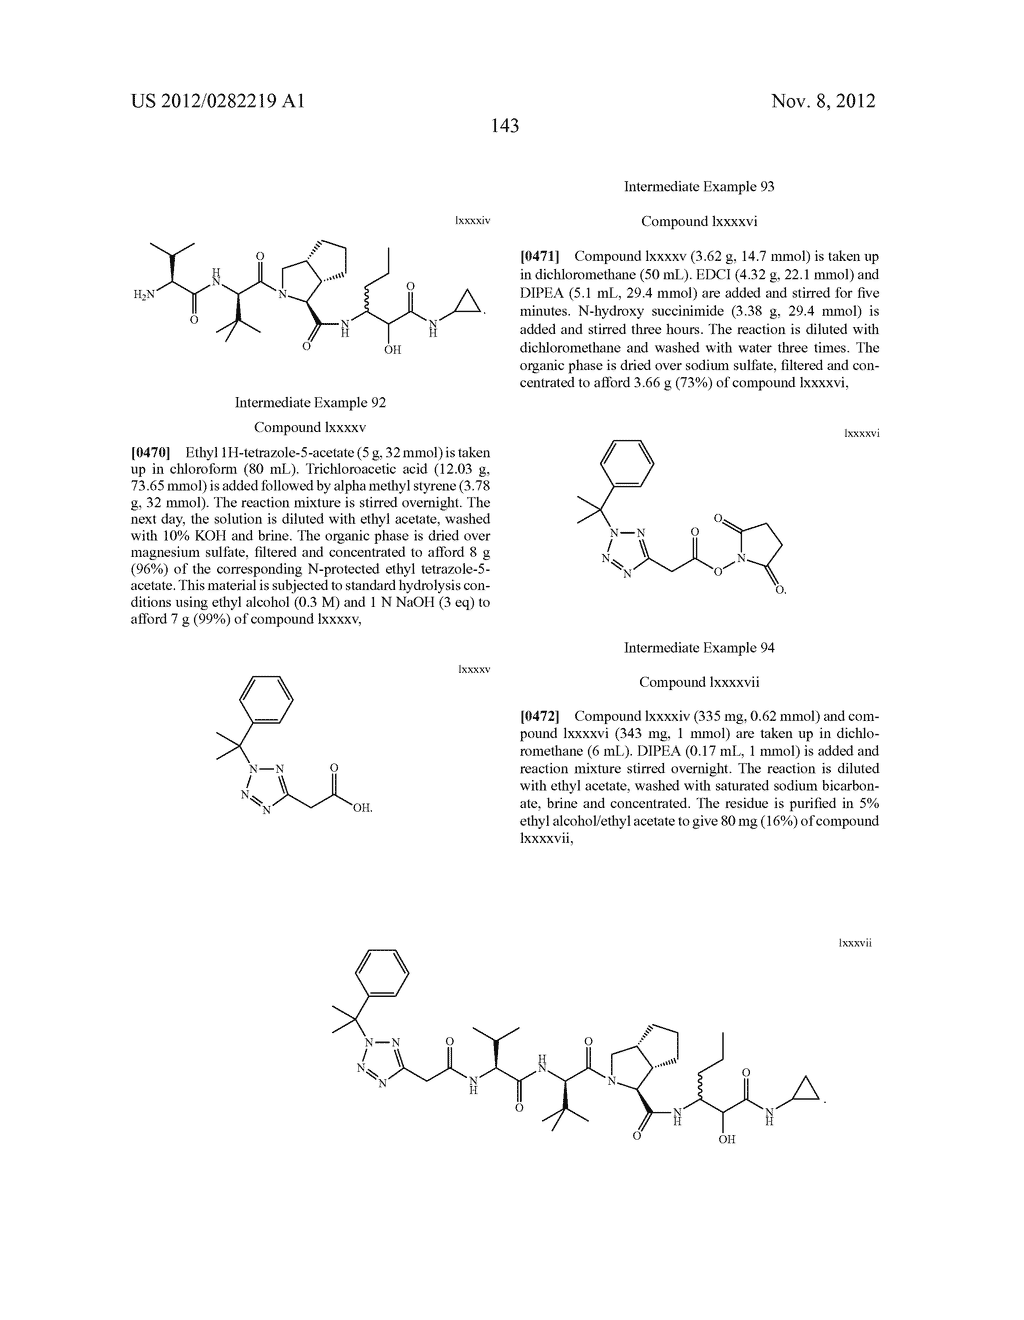 PEPTIDOMIMETIC PROTEASE INHIBITORS - diagram, schematic, and image 158